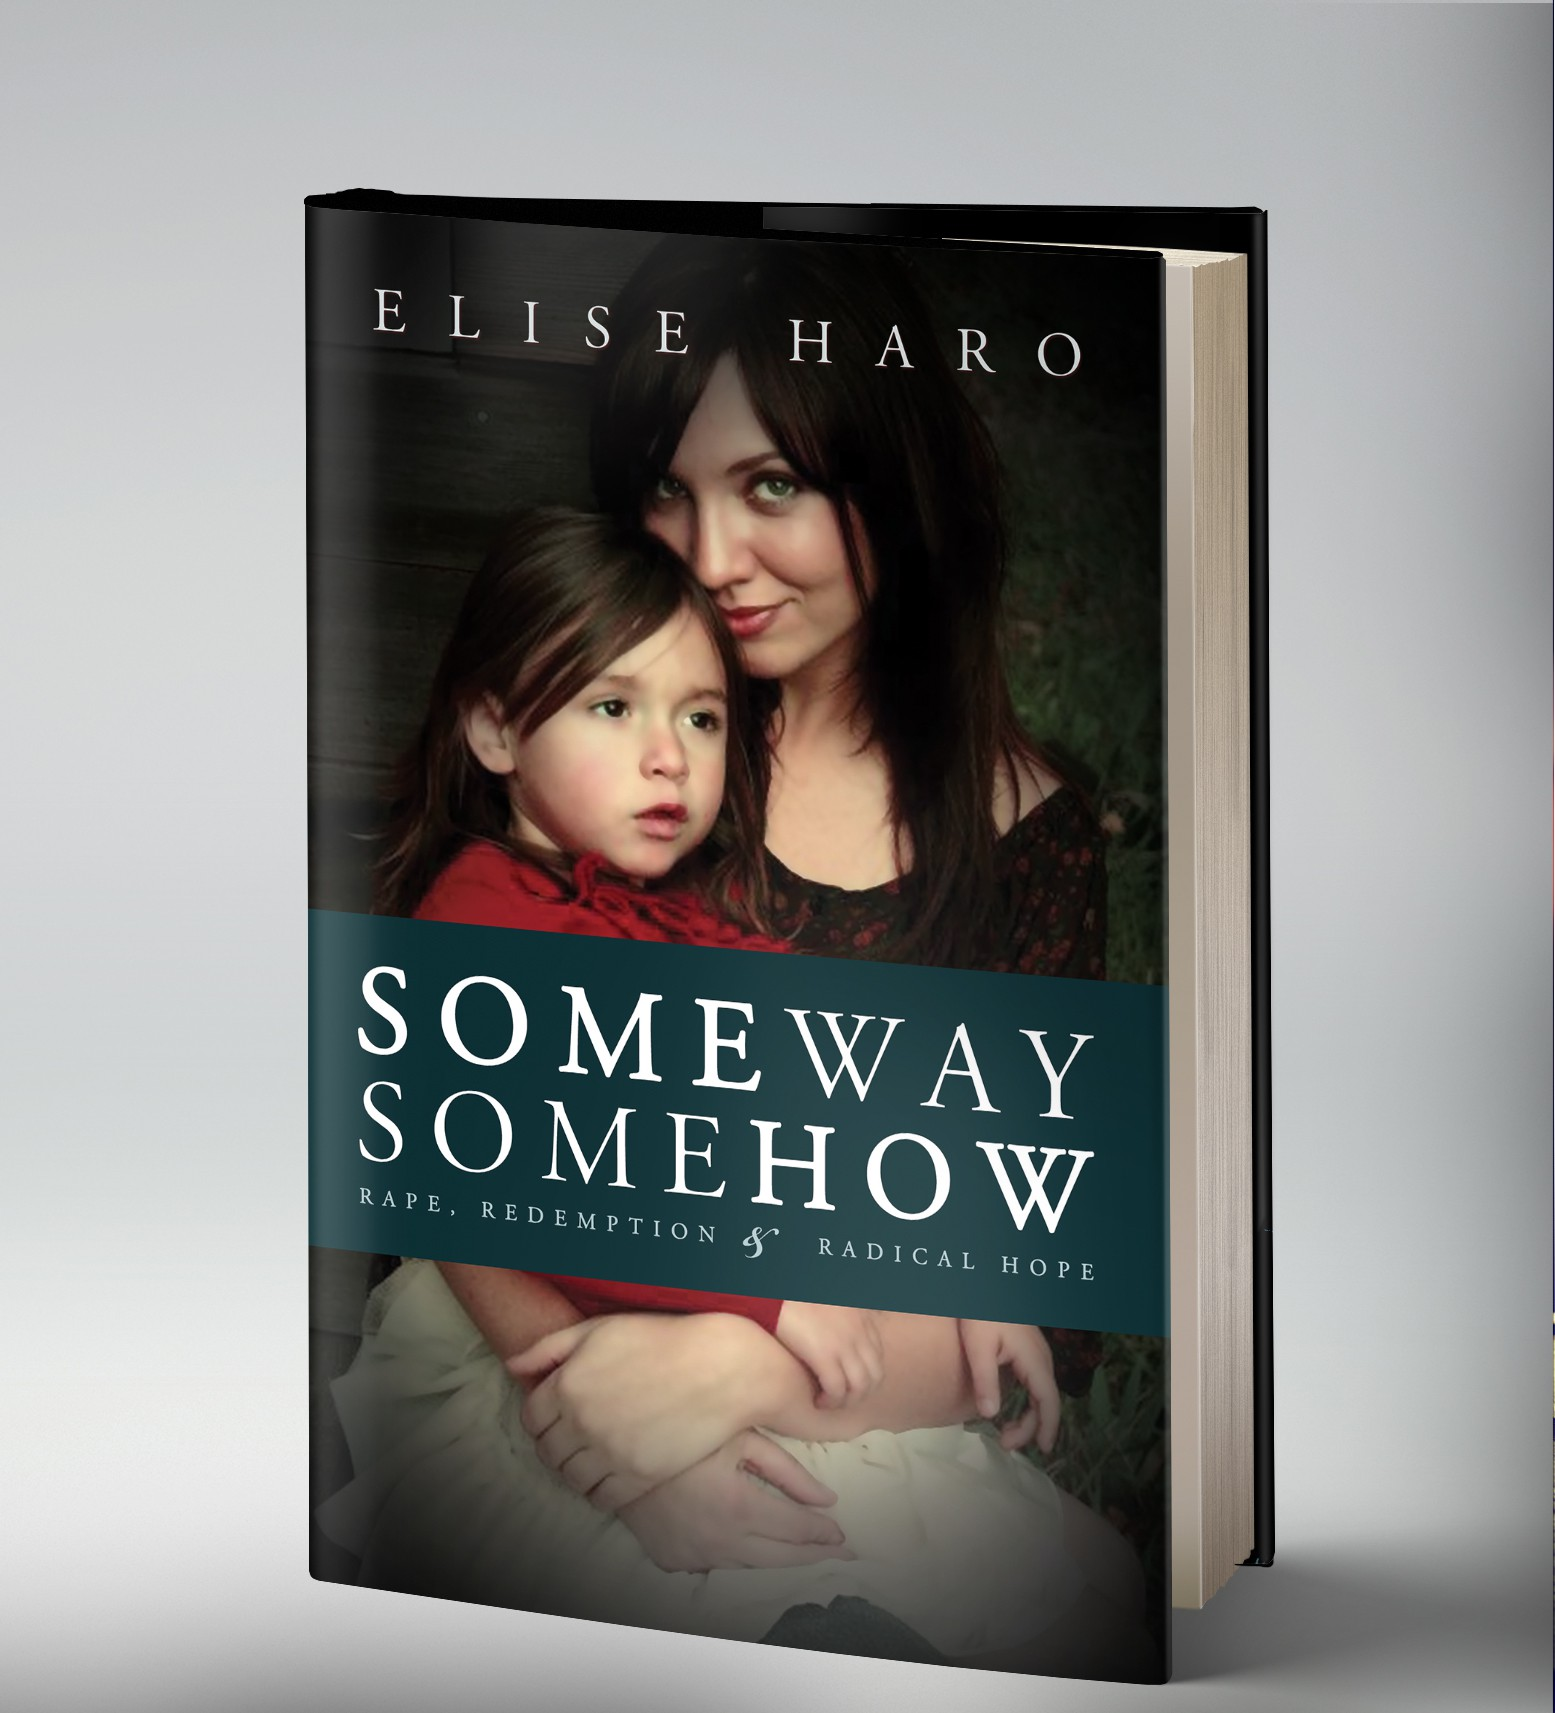 Create A Book Cover For A Moving Autobiography